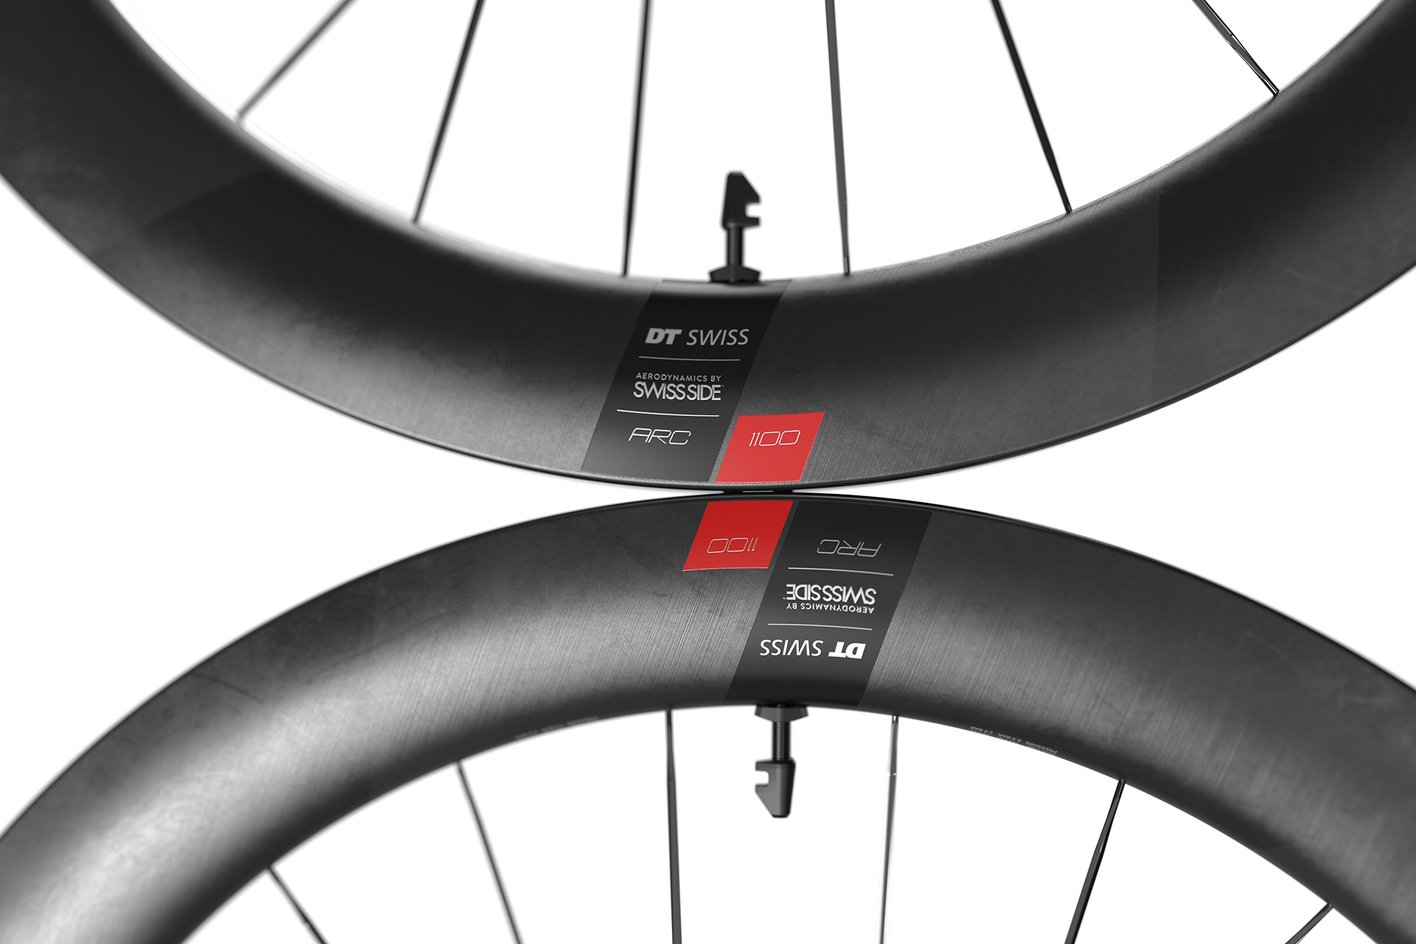 DT SWISS ARC 1100 RIM DECAL SETS for two wheels rim depth 50mm RED VARRIATION